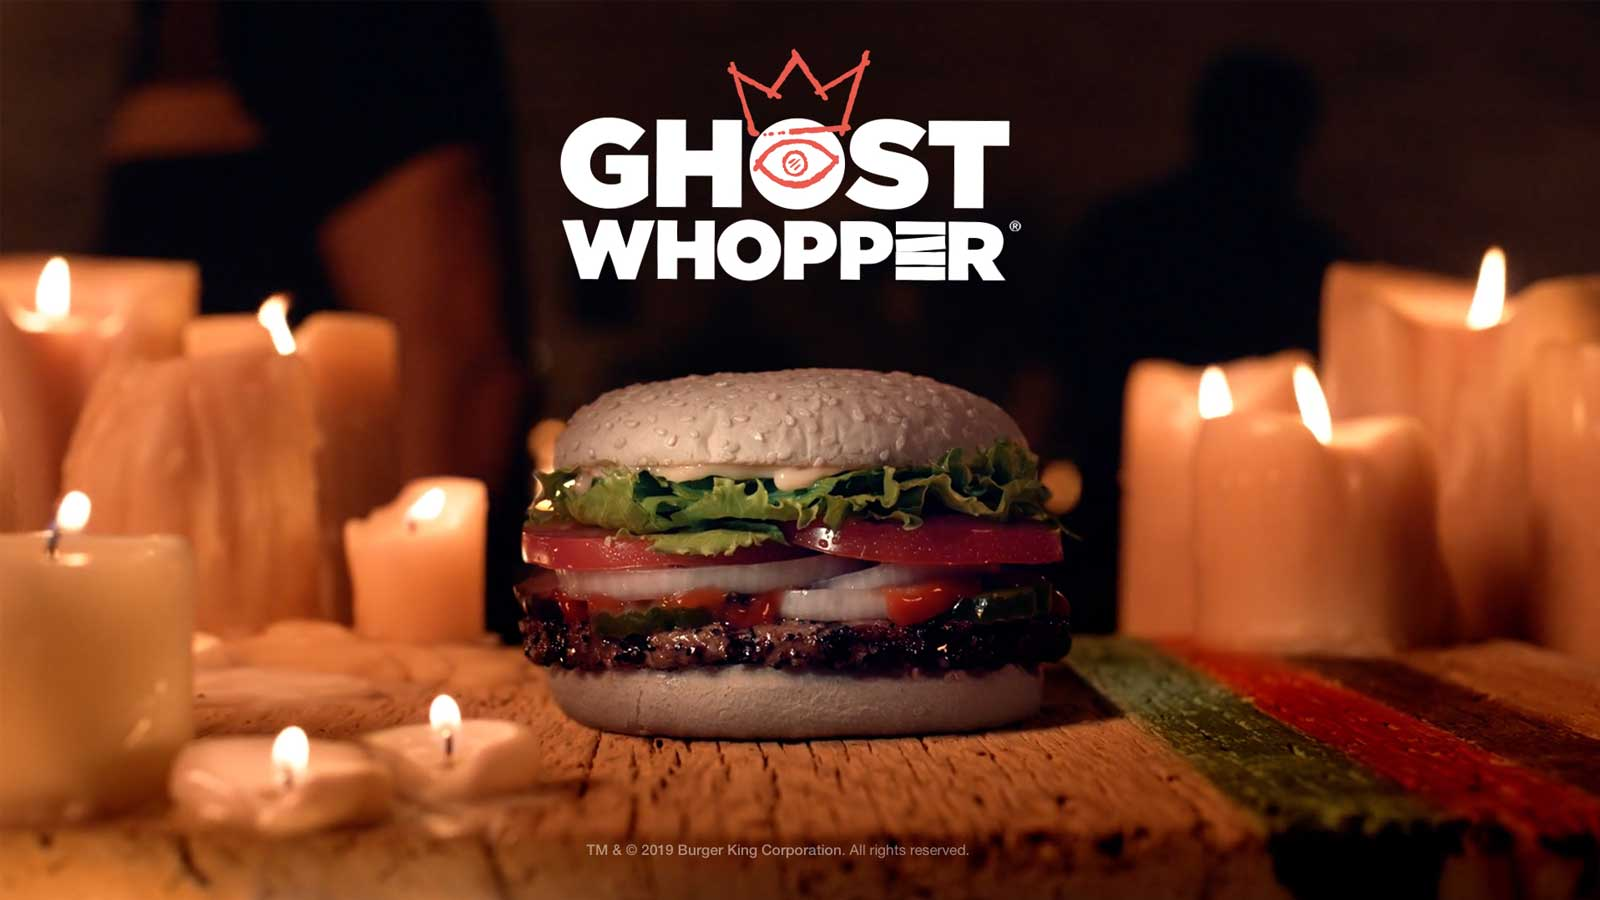 Burger King launches Ghost Whopper sandwich for Halloween